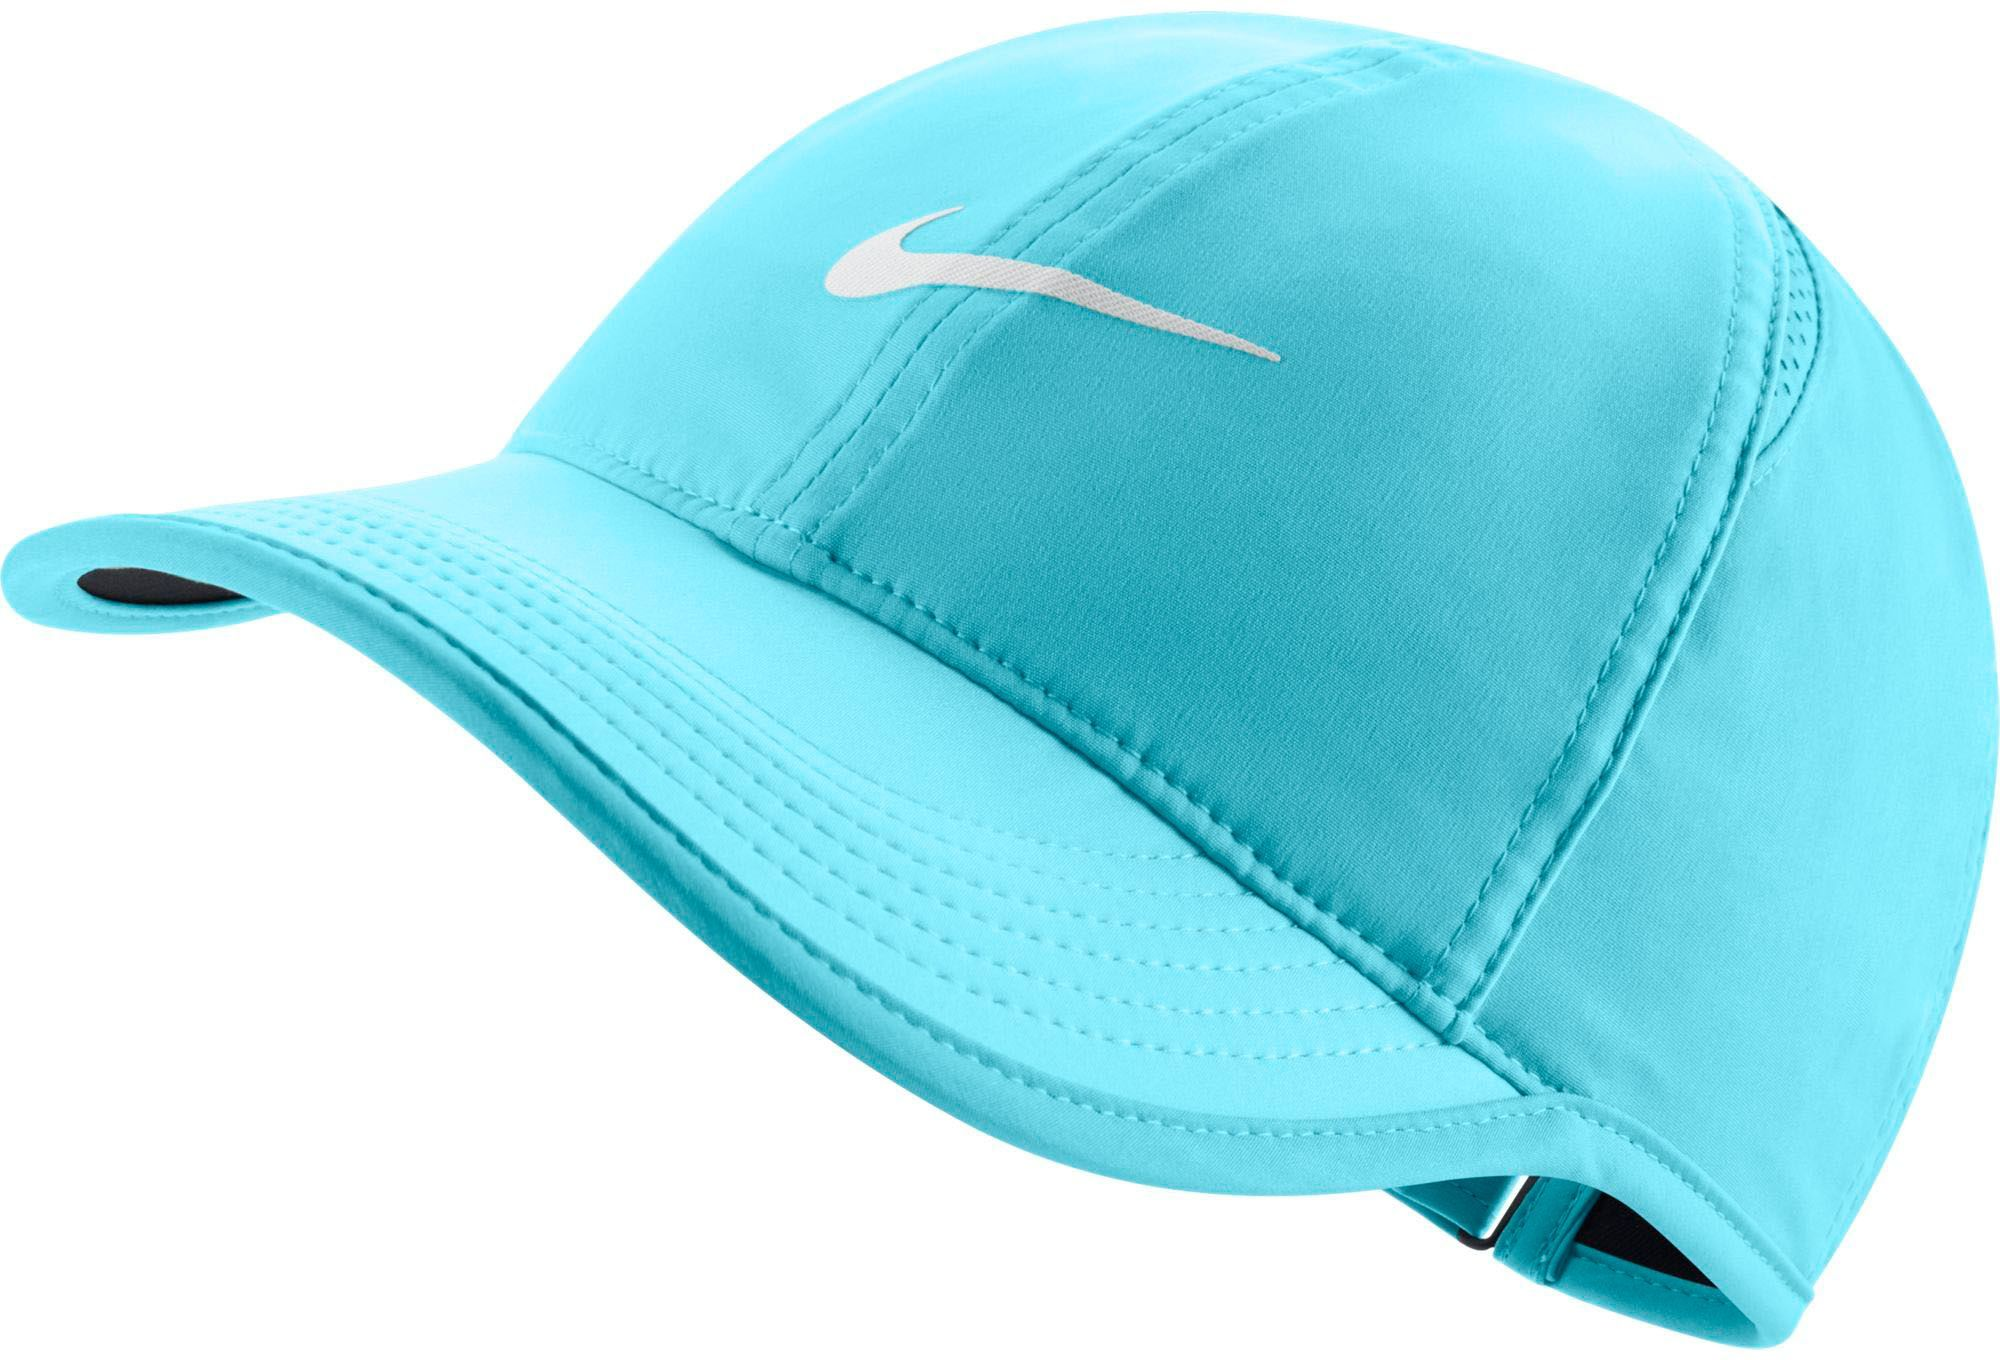 c7cc6130bb05f Nike Women's Feather Light Adjustable Hat, Blue Embroidered Hats,  Embroidered Baseball Caps, Fitted